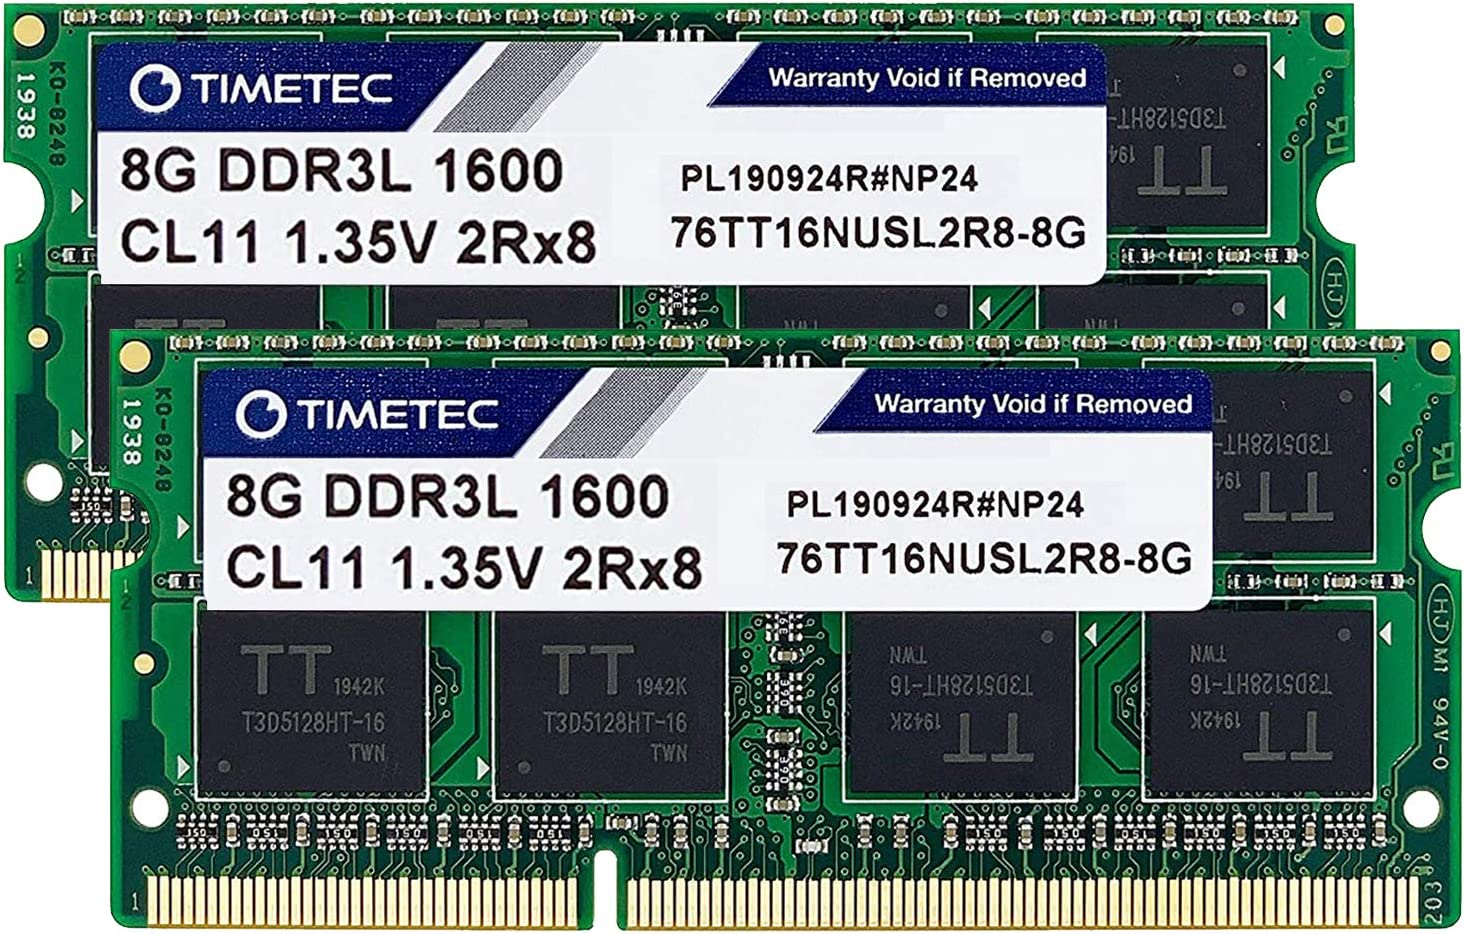 Timetec Hynix IC 16GB Kit(2x8GB) DDR3L 1600MHz PC3L-12800 Non ECC Unbuffered 1.35V CL11 2Rx8 Dual Rank SODIMM Laptop Memory Ram (16GB Kit(2x8GB))